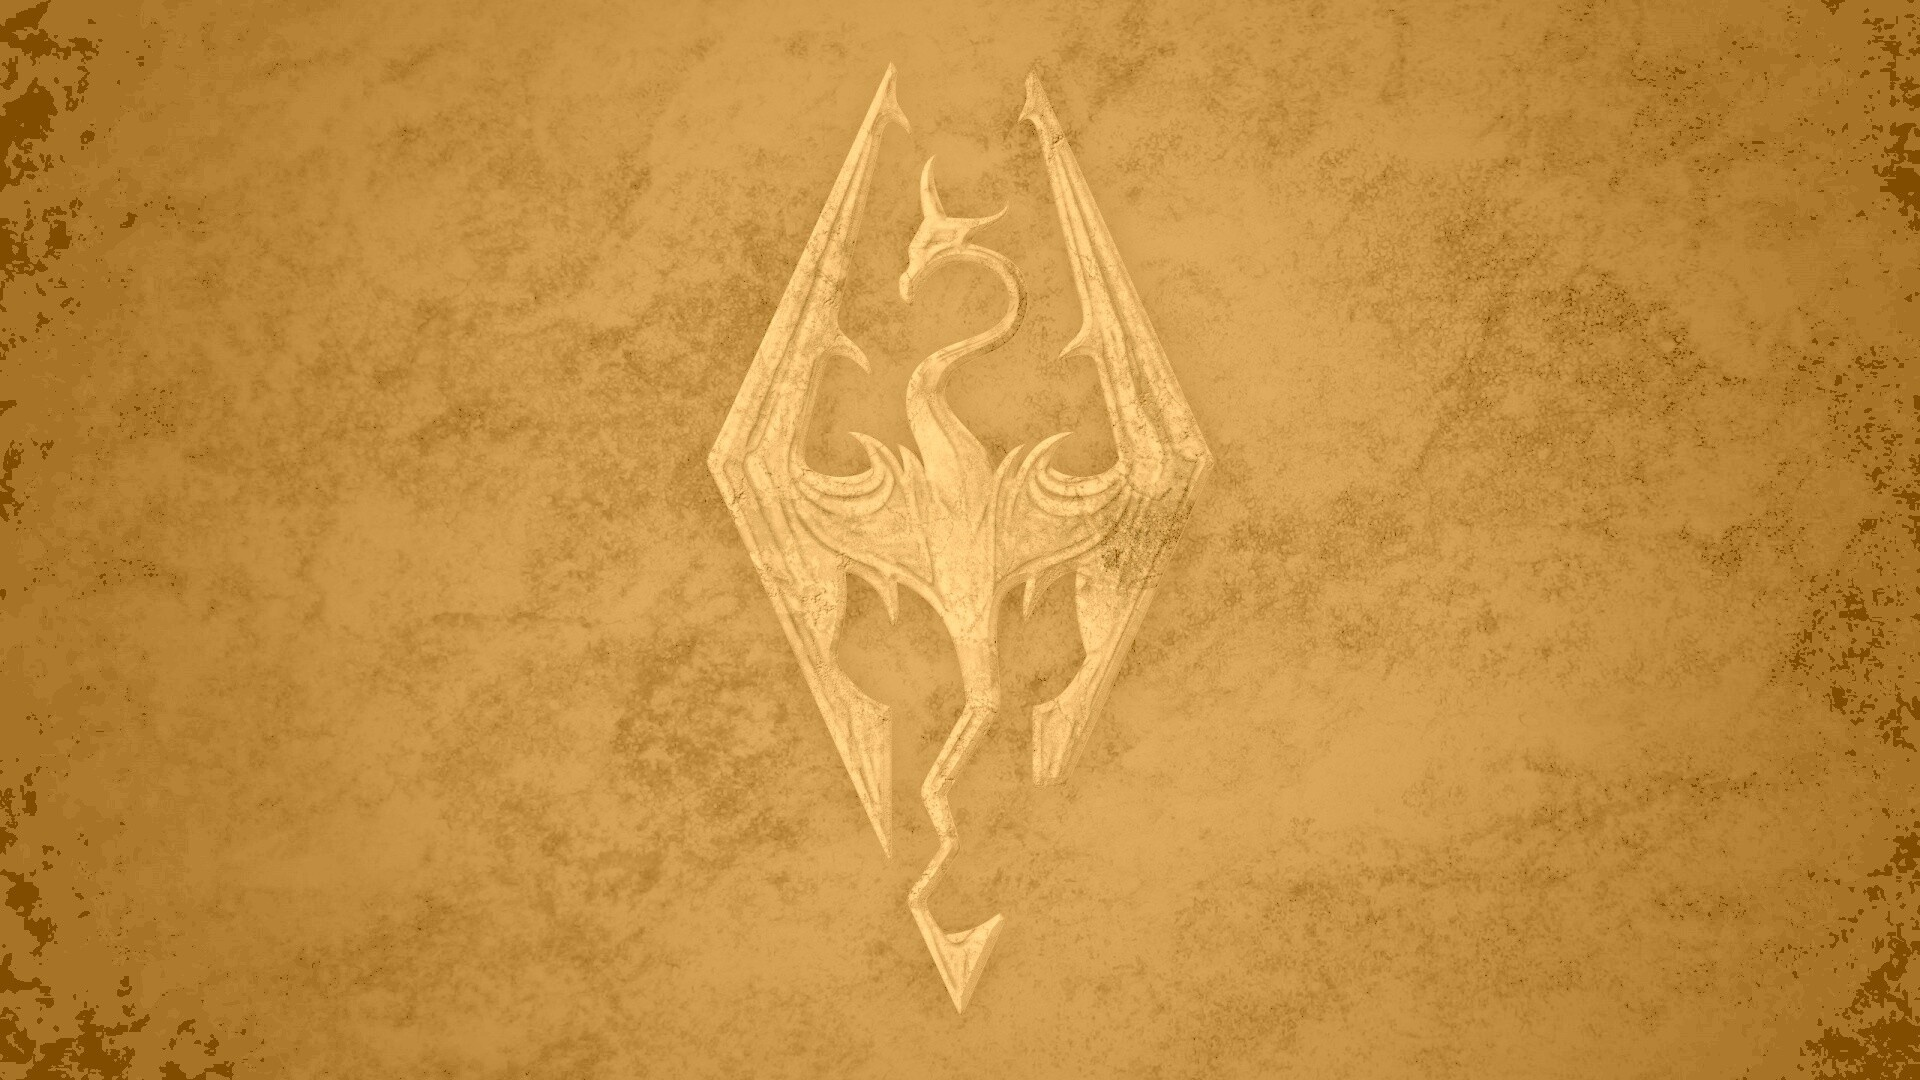 Skyrim background picture